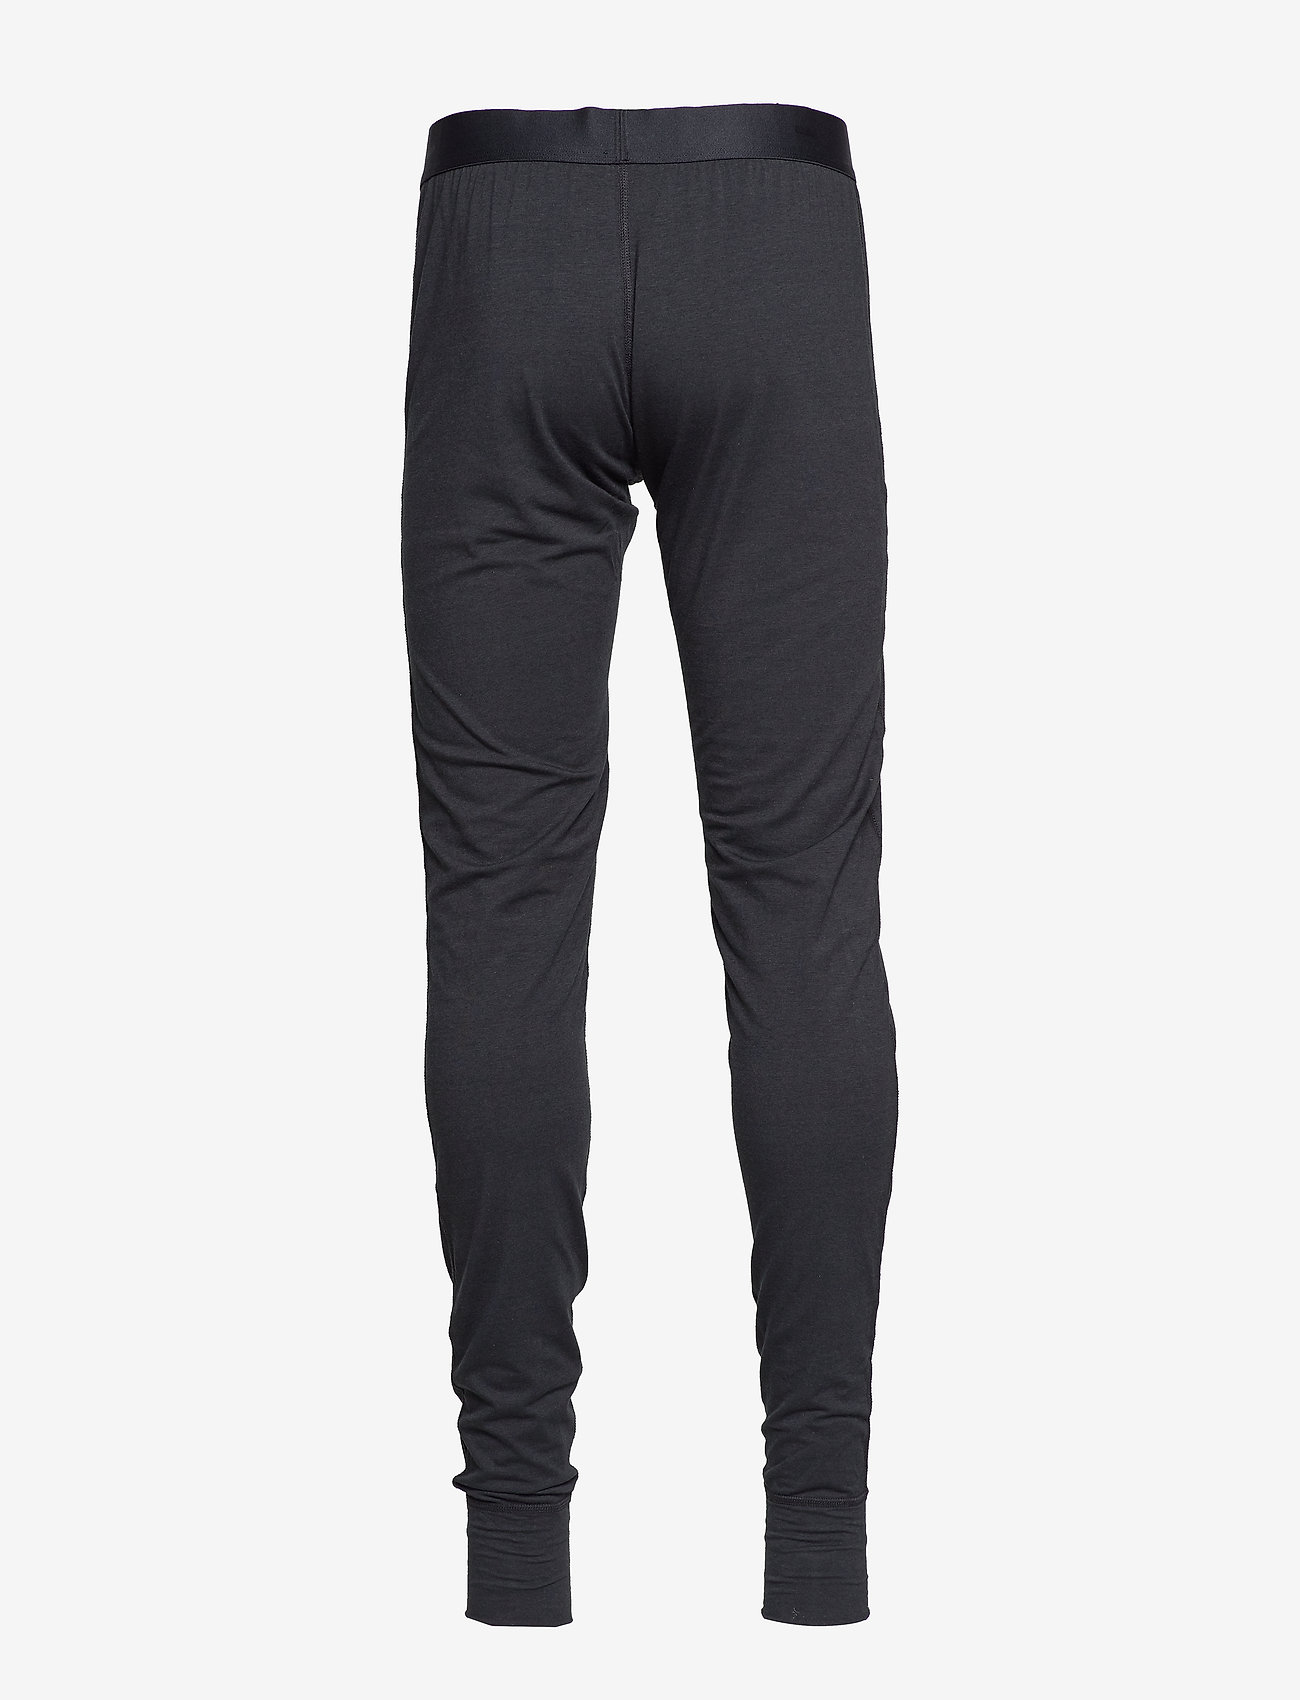 Resteröds - BAMBU Long John - base layer underdeler - multi - 1